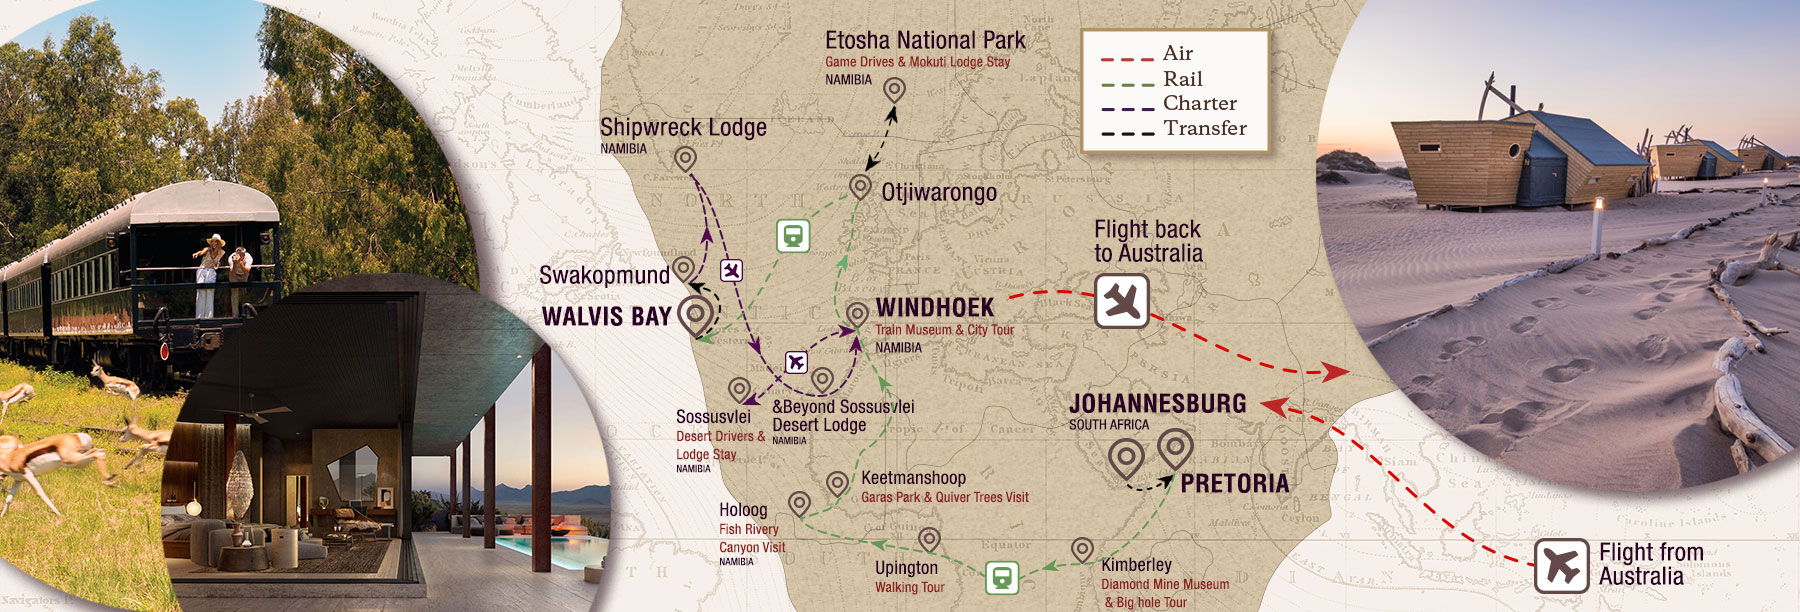 Namibian Exploration by Trains, Planes and Automobiles Map